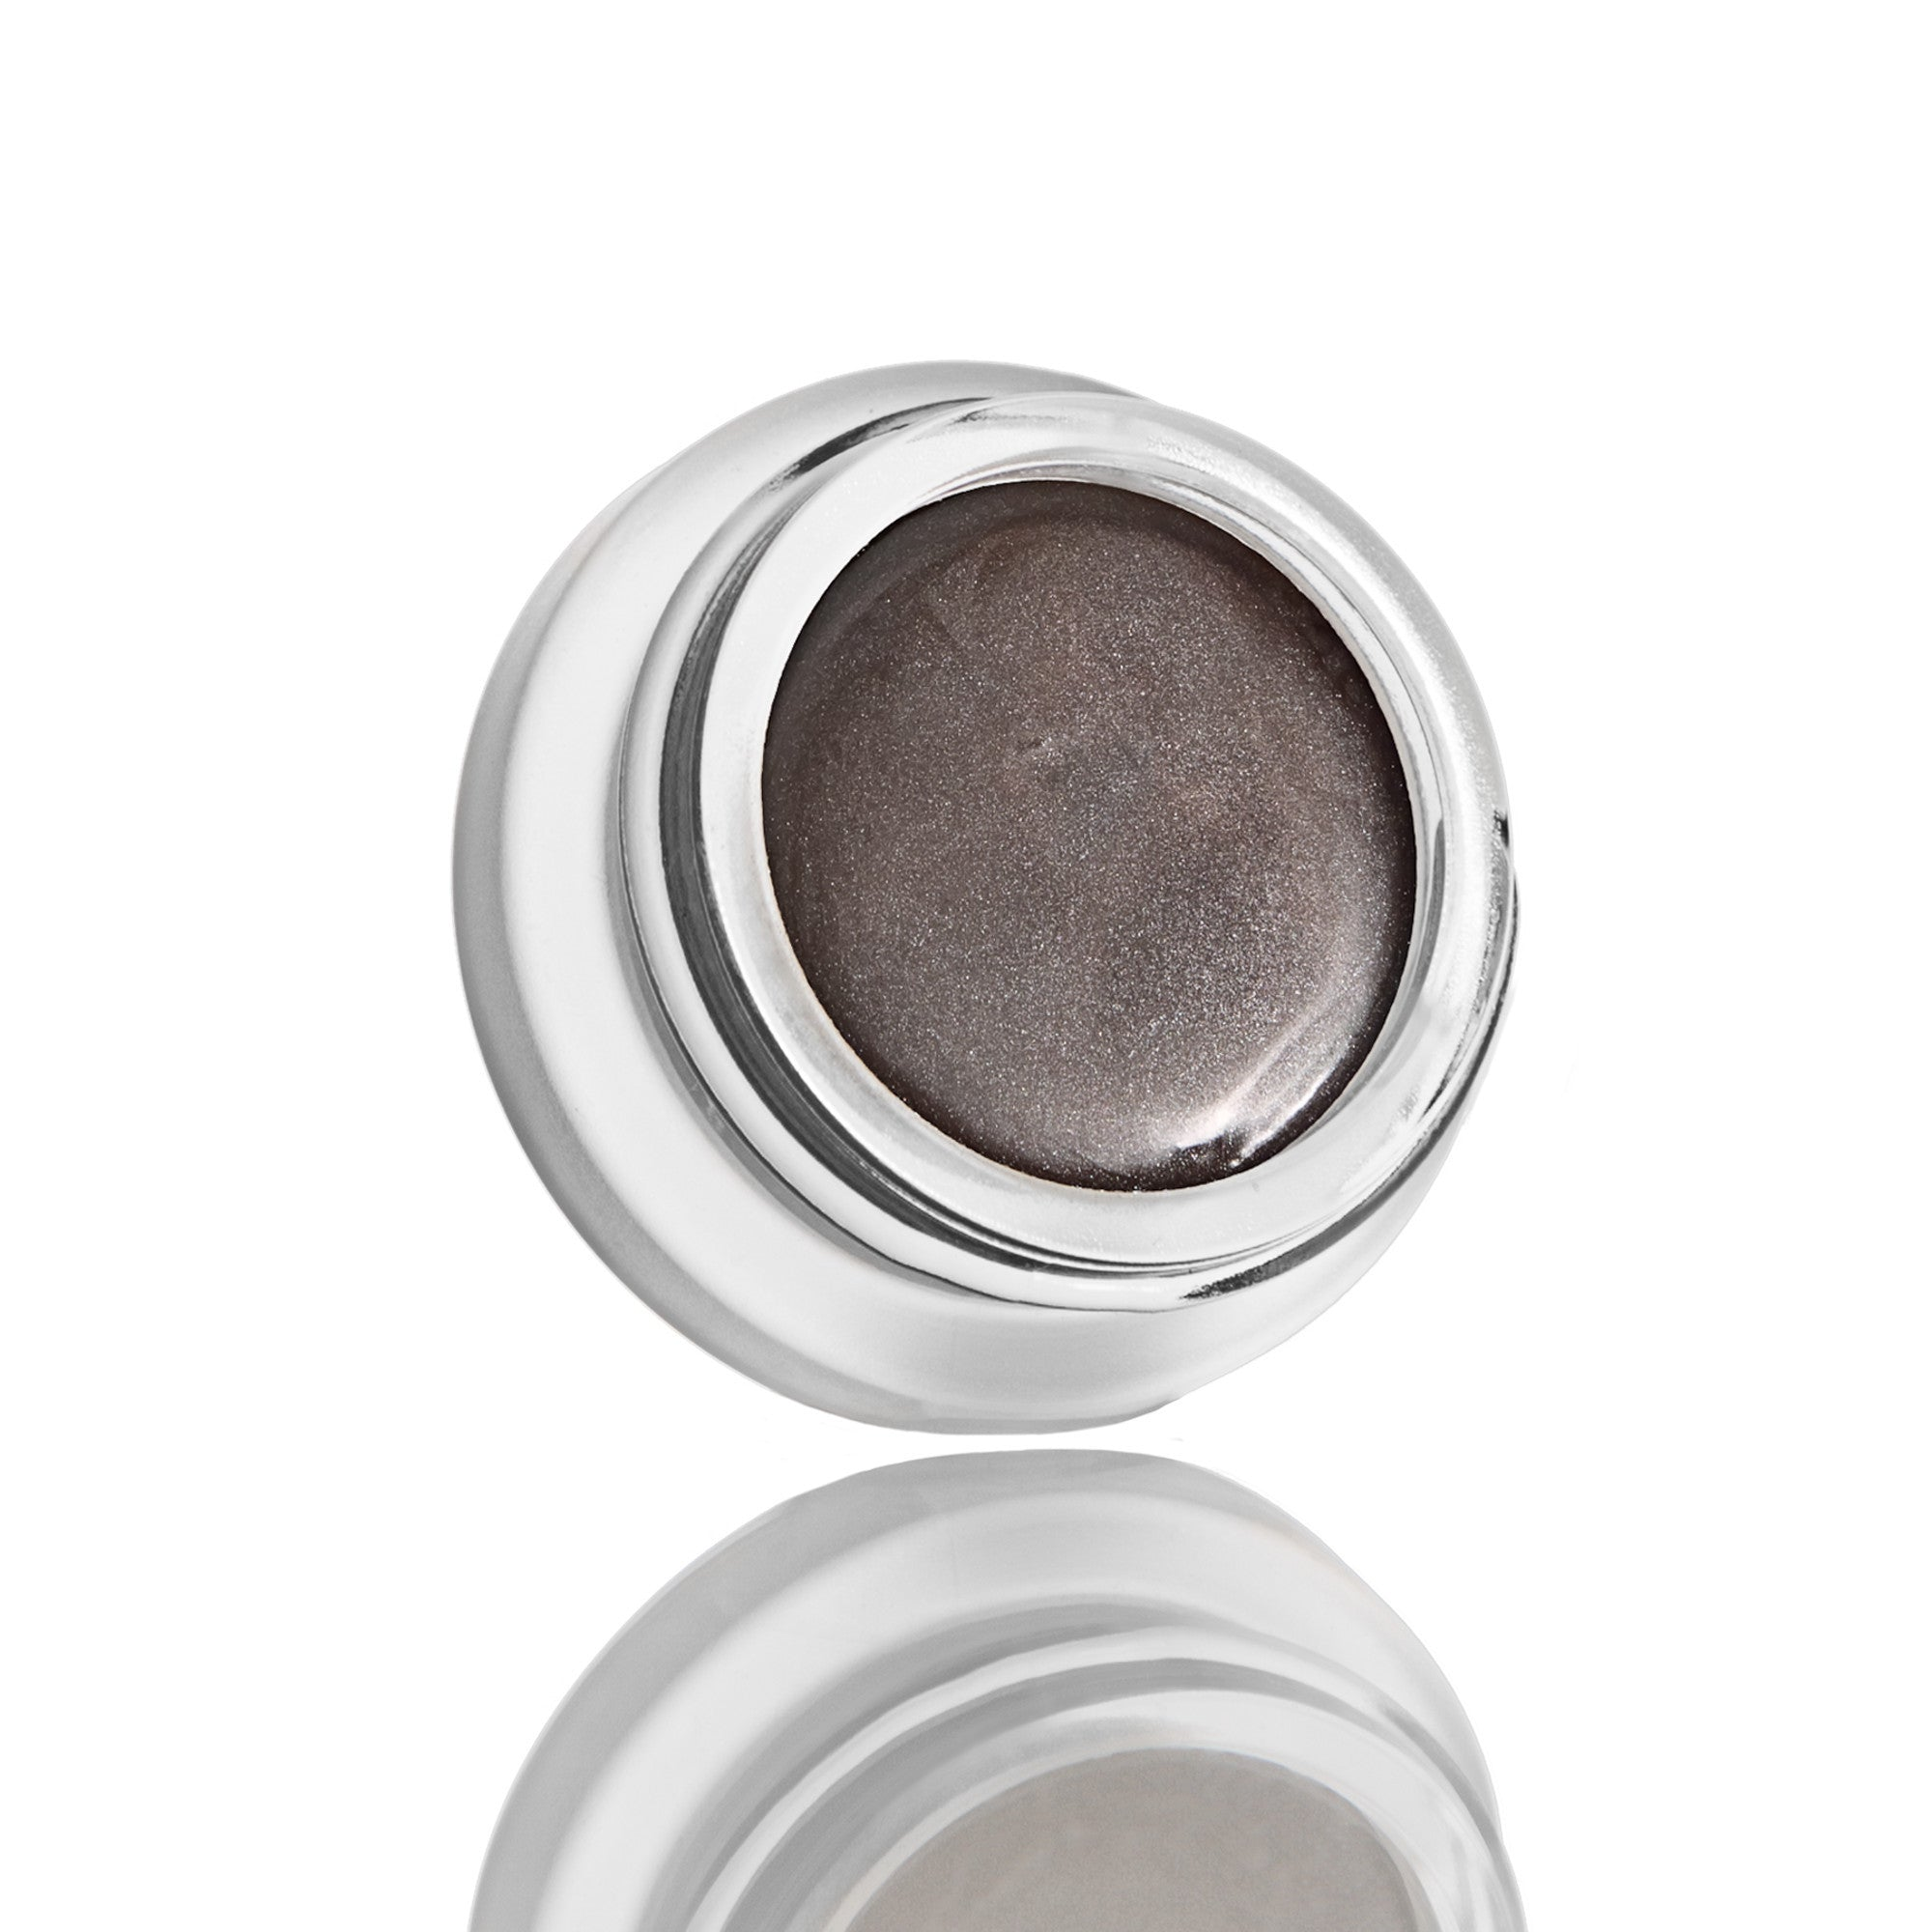 Soothing Creme Eye Shadow In Damn Elvia - La Bella Figura Beauty